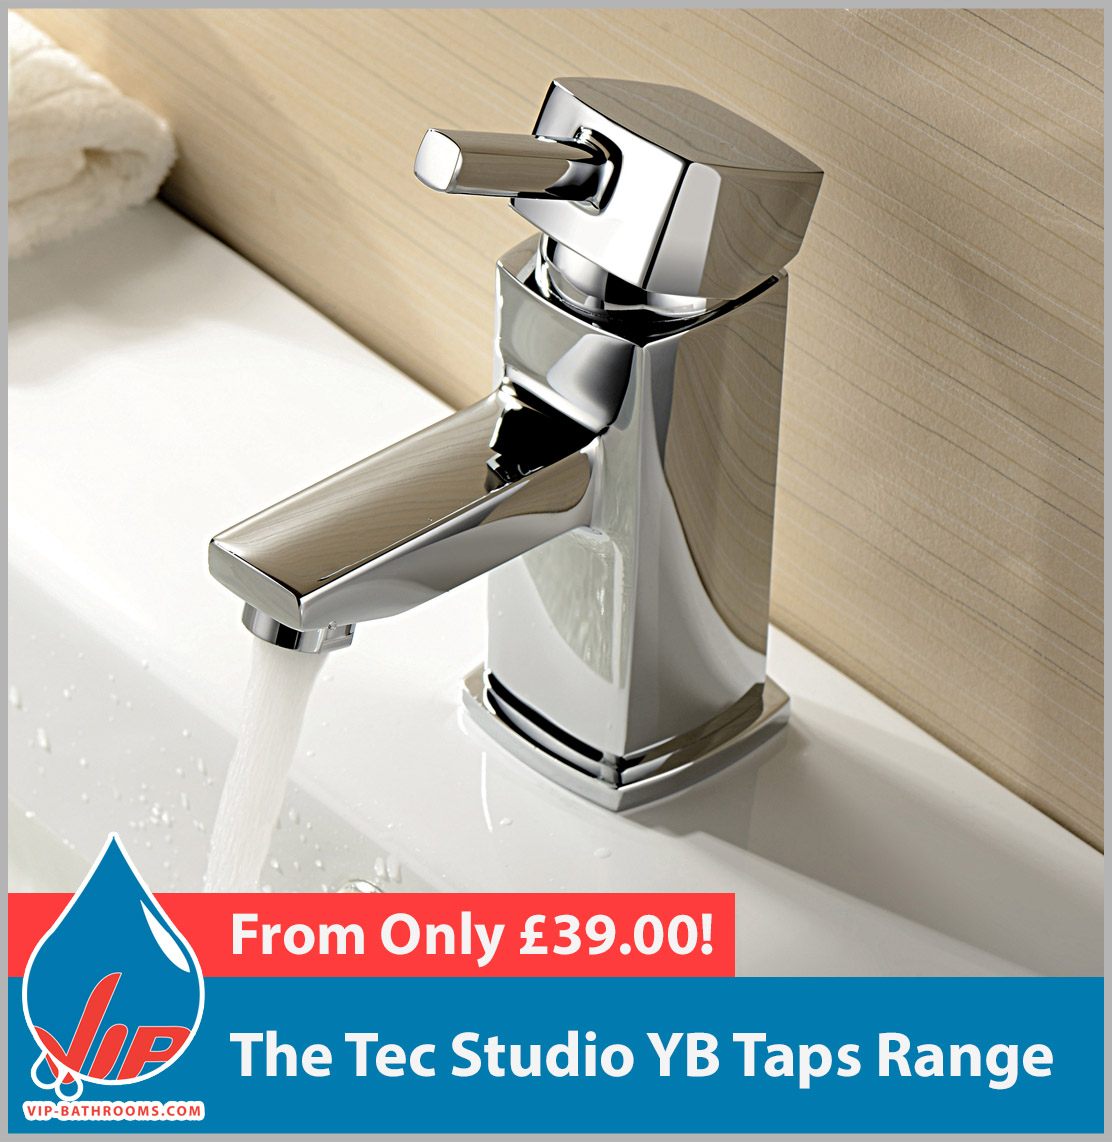 Click here to view the Tec Studio YB range of high quality designer Bathroom Taps